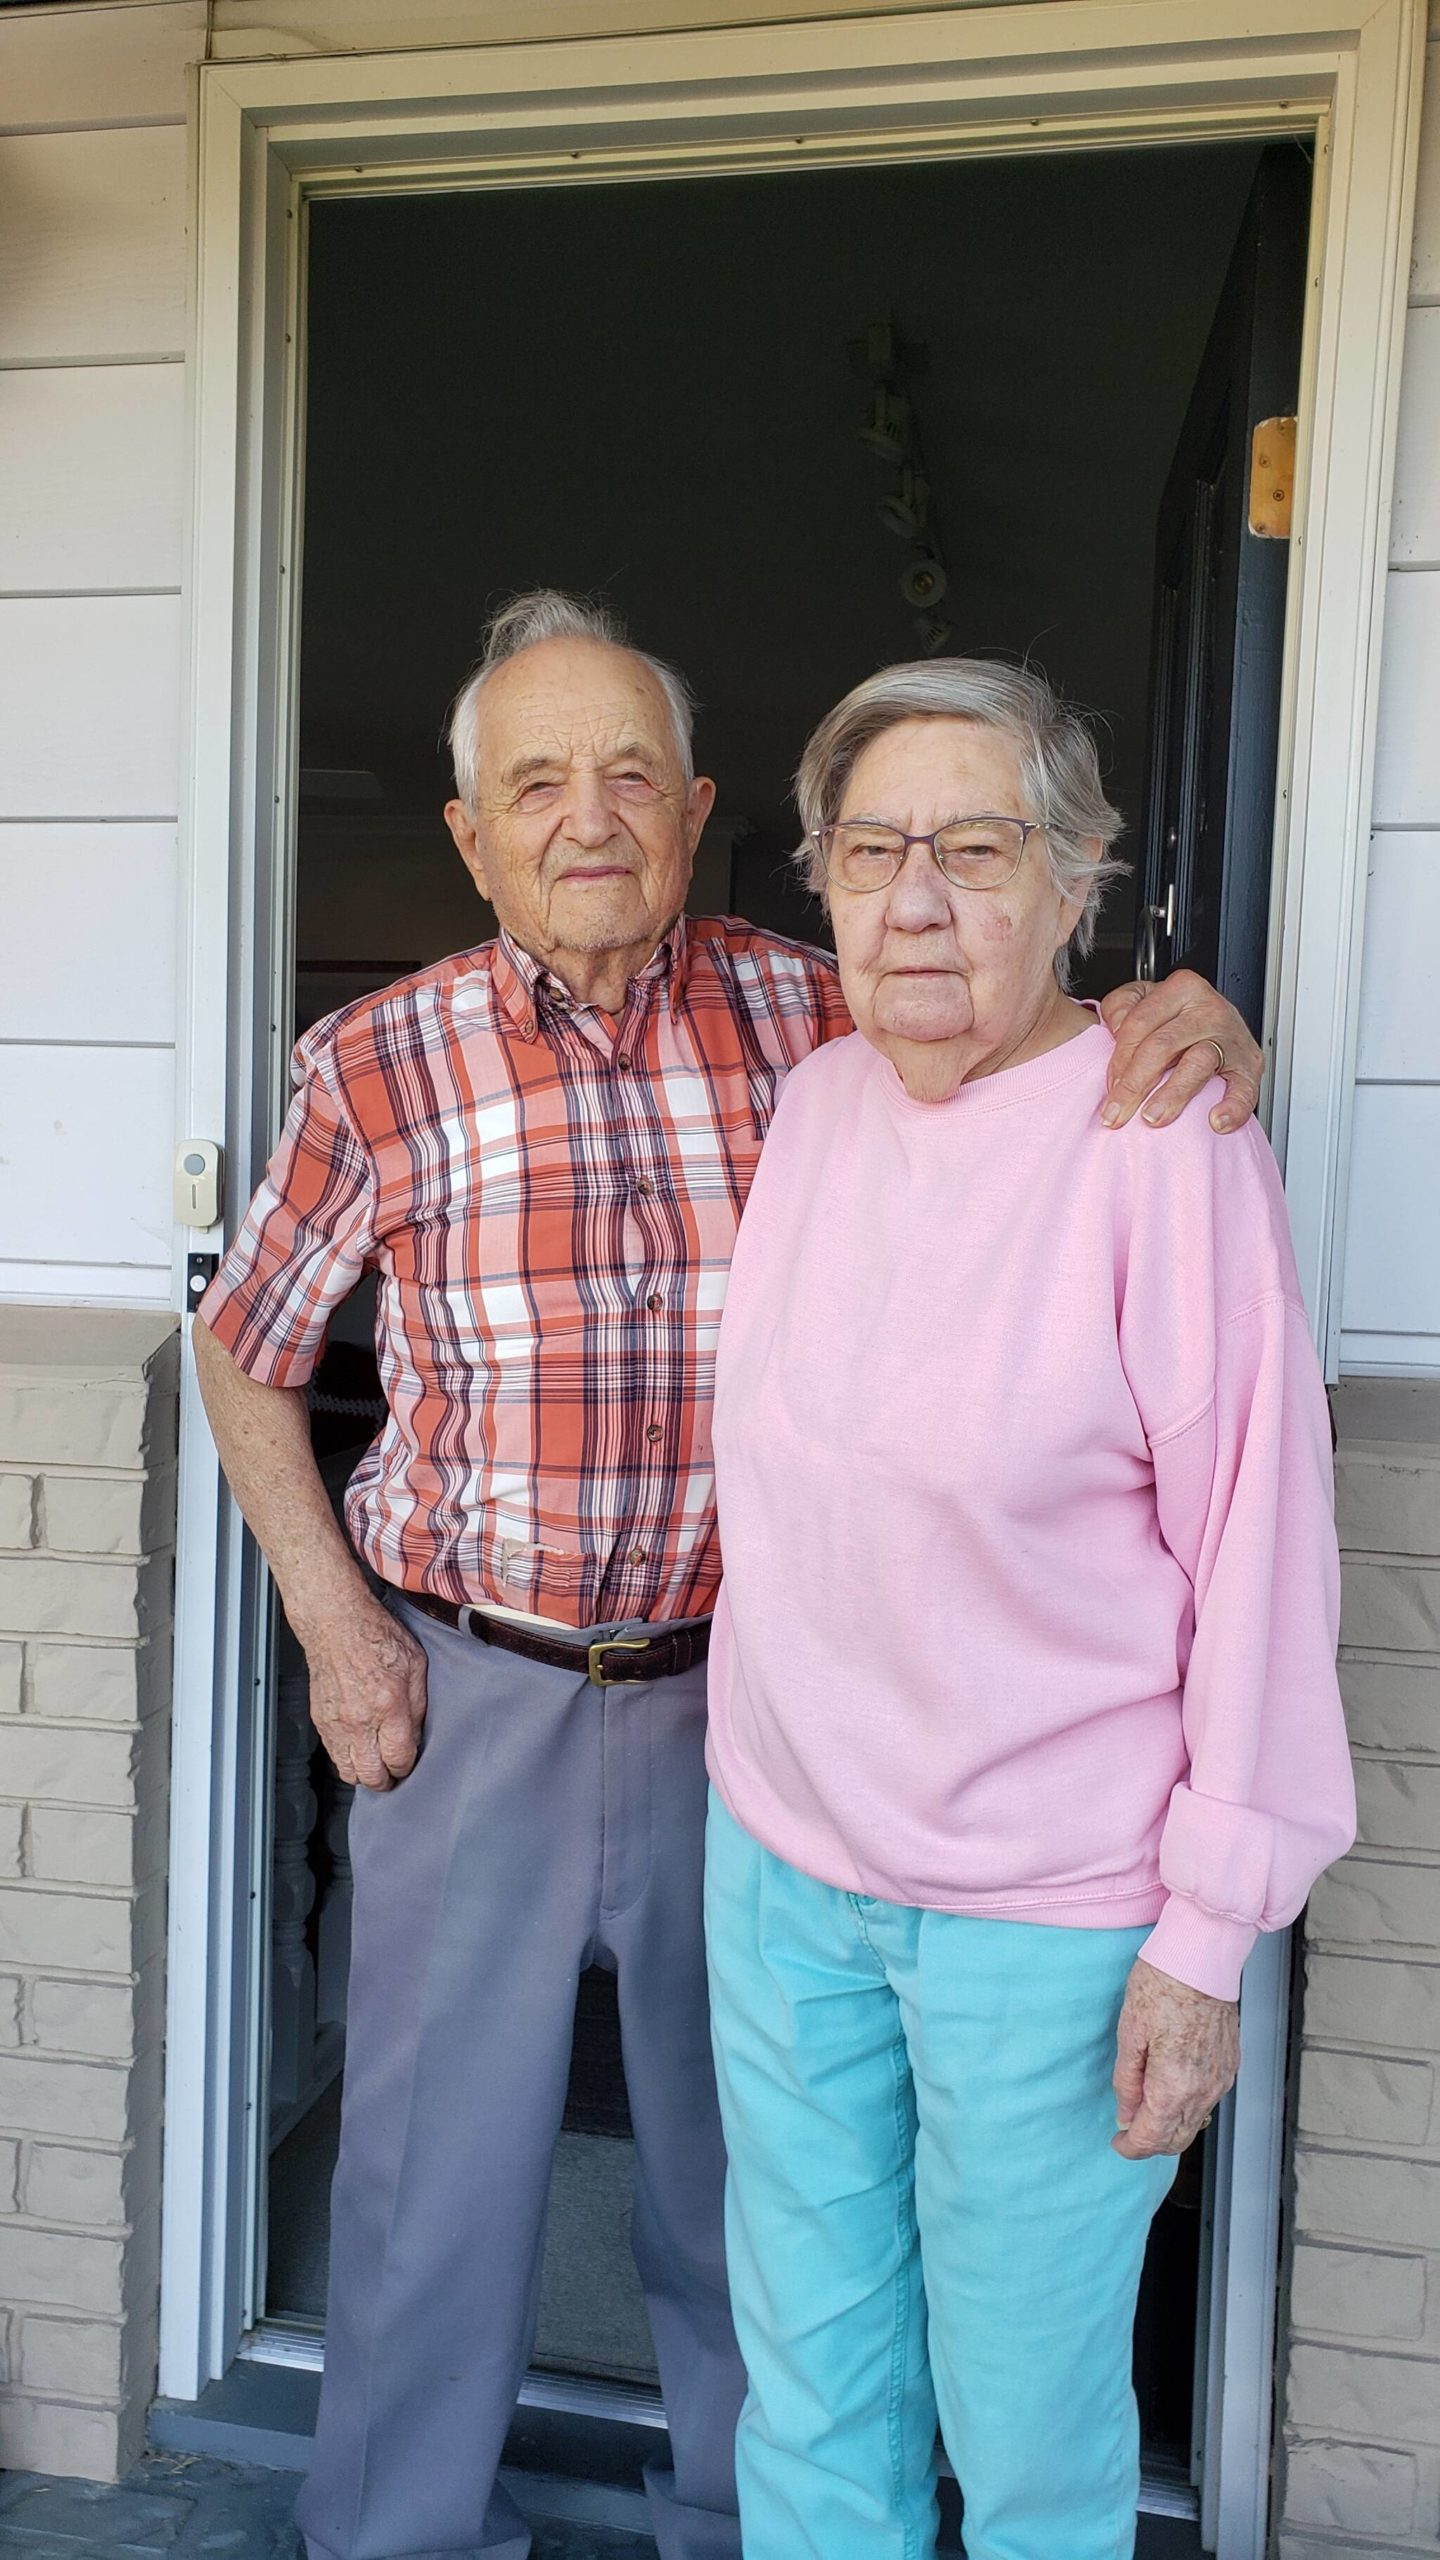 Aldergrove couple, John and Edna Wicentowich celebrate 70 years of marriage (Lorea Wicentowich/Special to The Star)